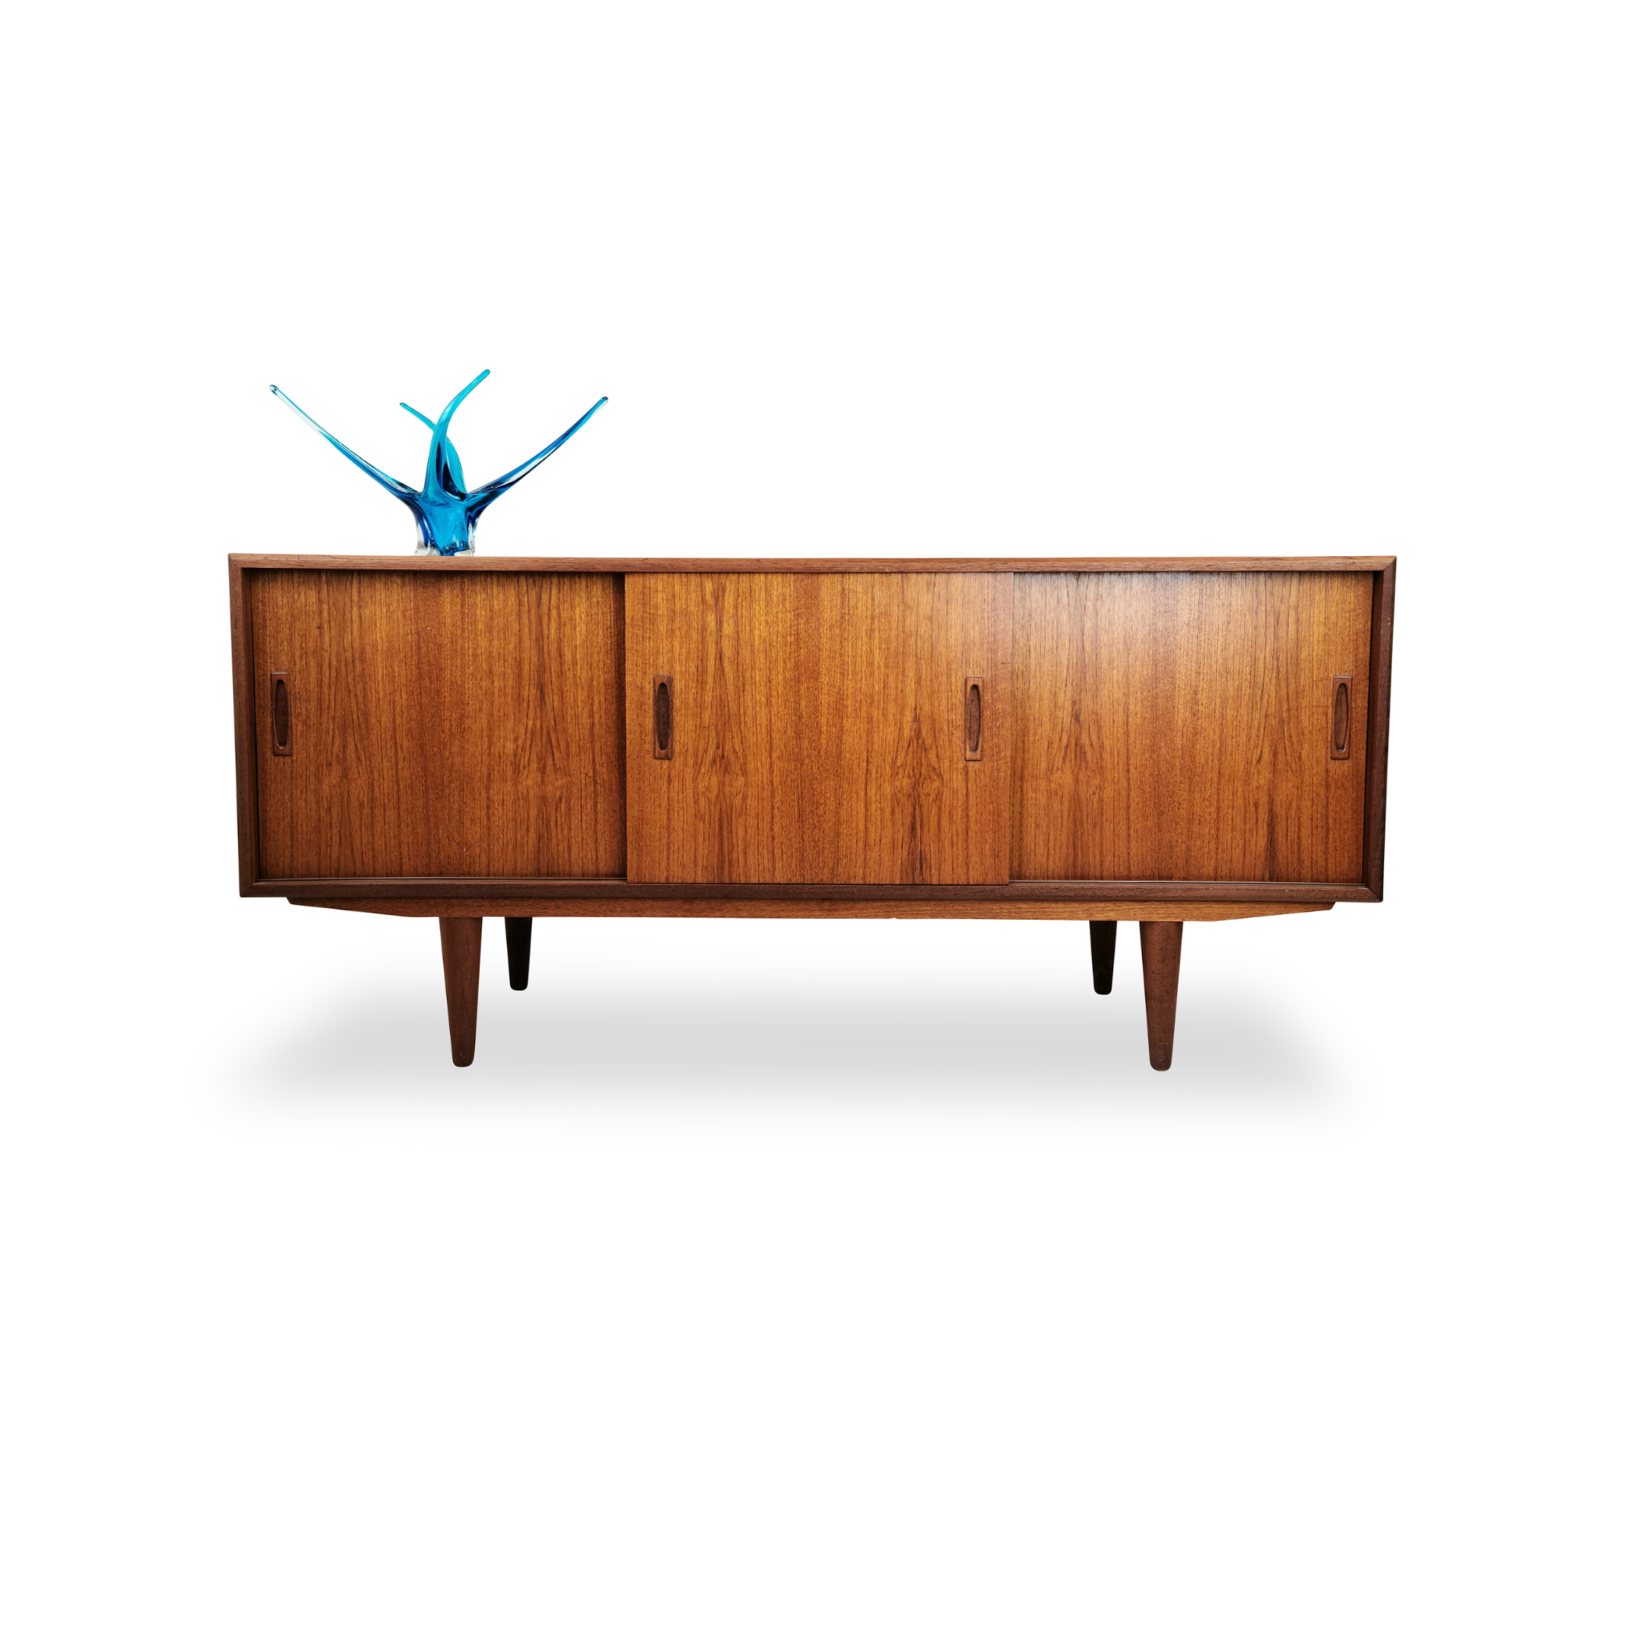 Mid century teak sideboard by Clausen and Son